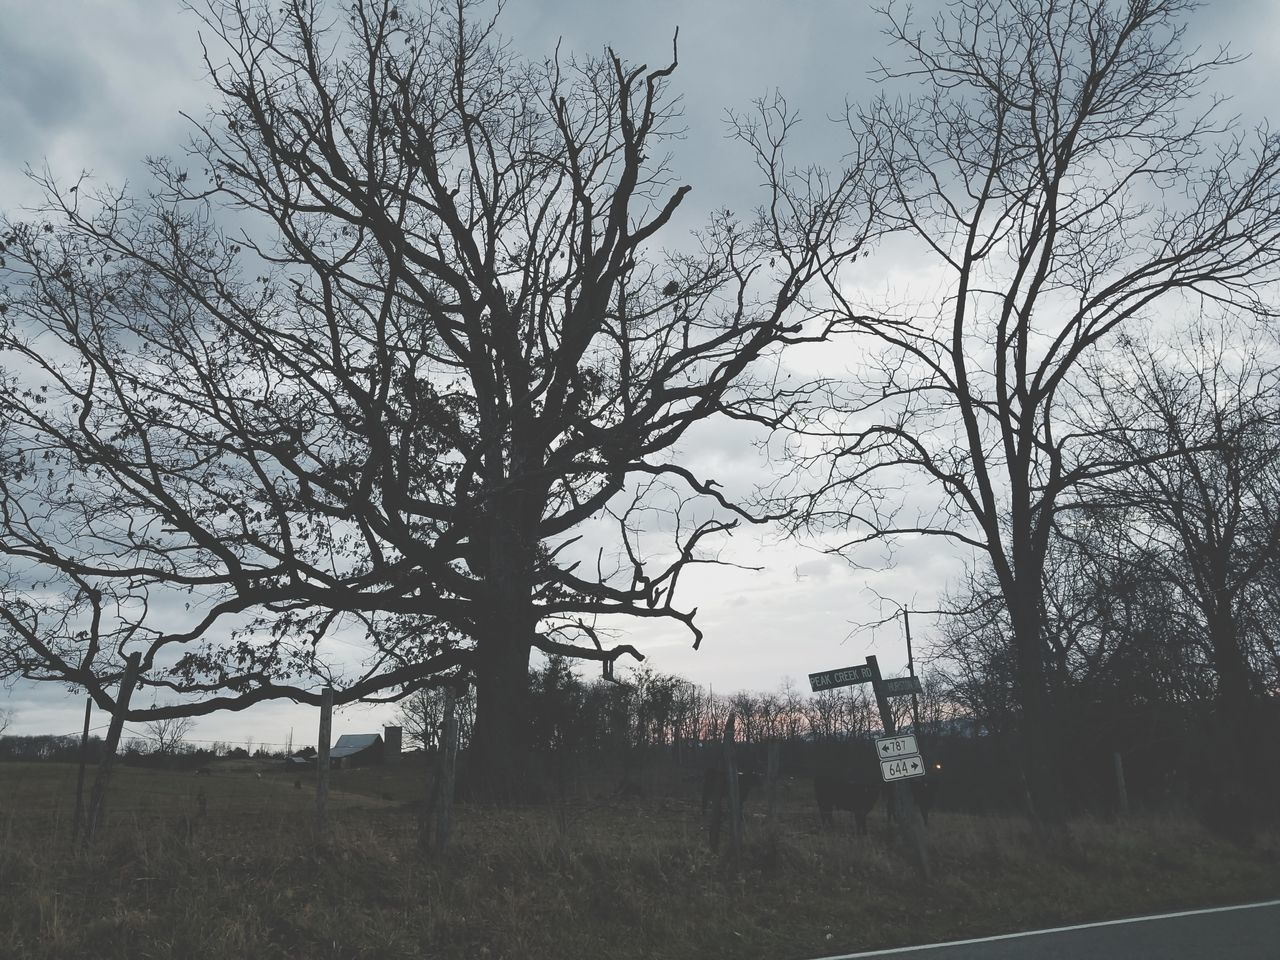 bare tree, tree, sky, day, no people, nature, outdoors, branch, landscape, beauty in nature, architecture